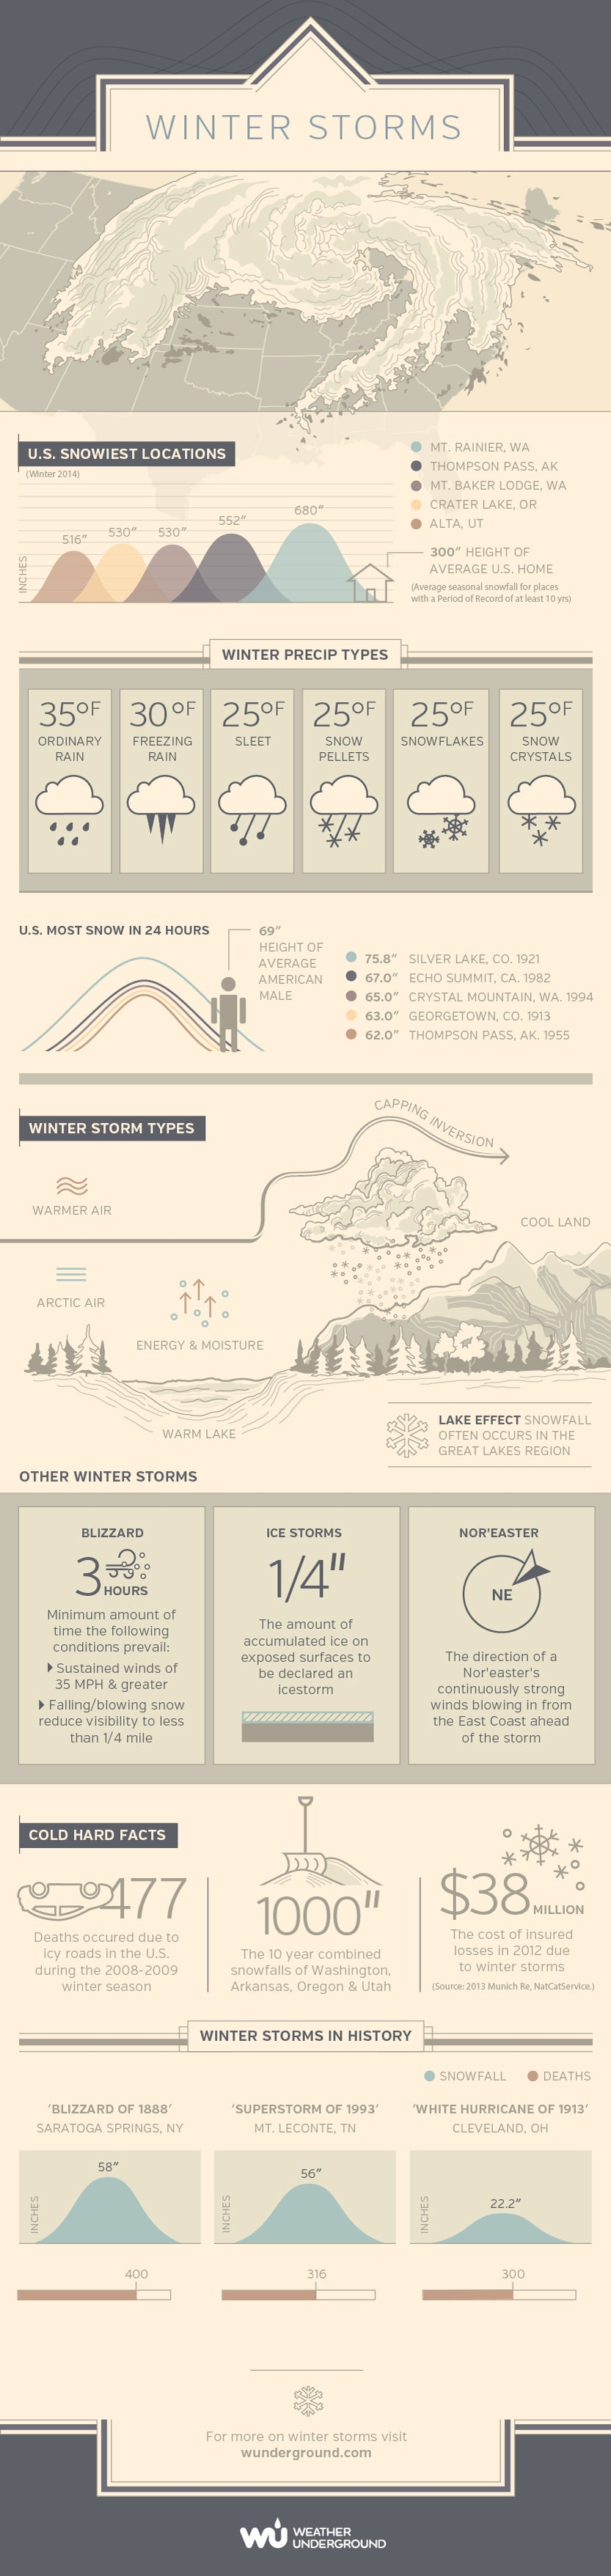 Snow Way! Surprising Facts About Winter Storms (Infographic)